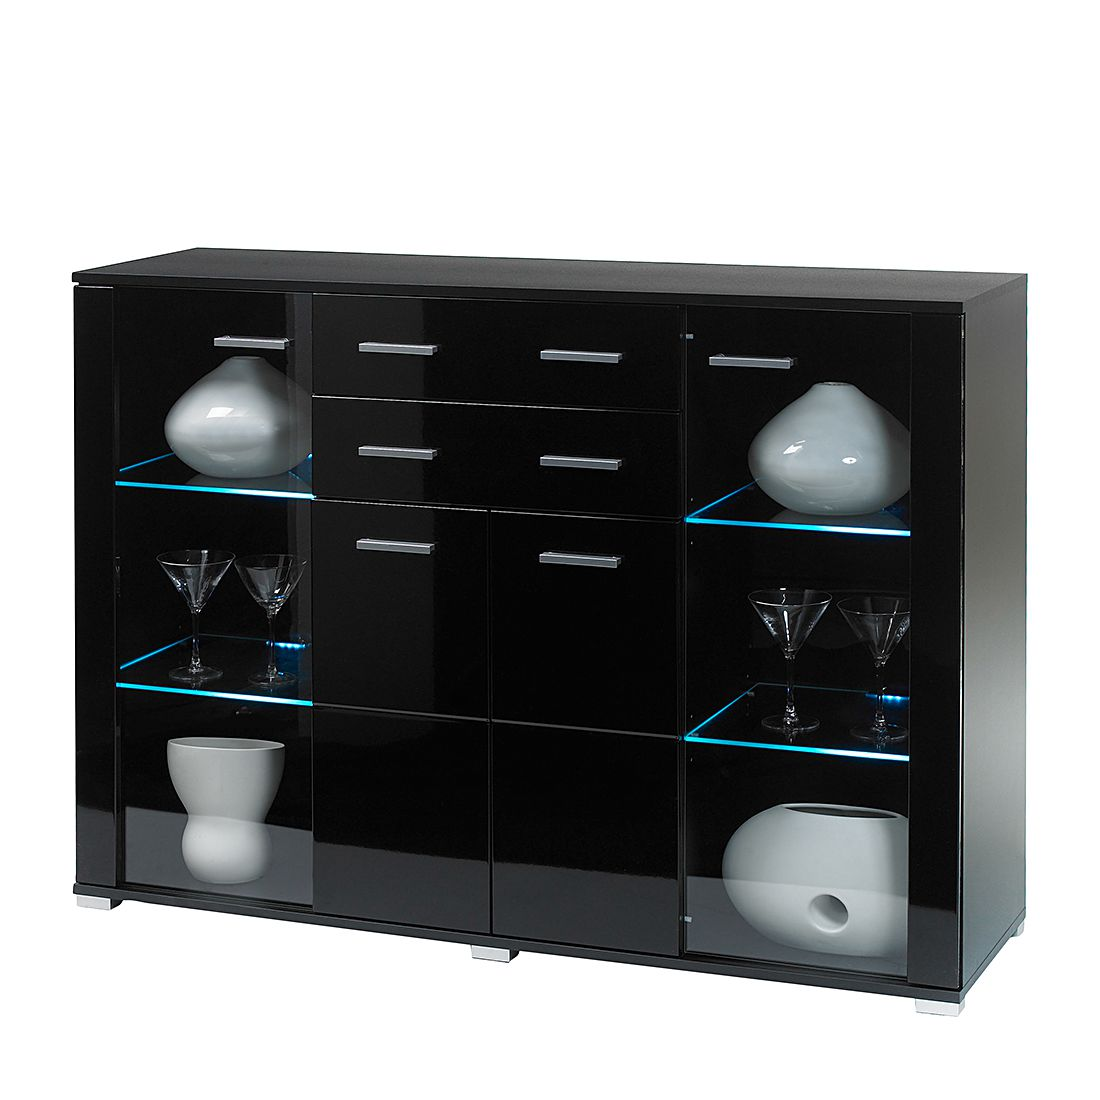 highboard valenzia inkl beleuchtung schwarz hochglanz. Black Bedroom Furniture Sets. Home Design Ideas